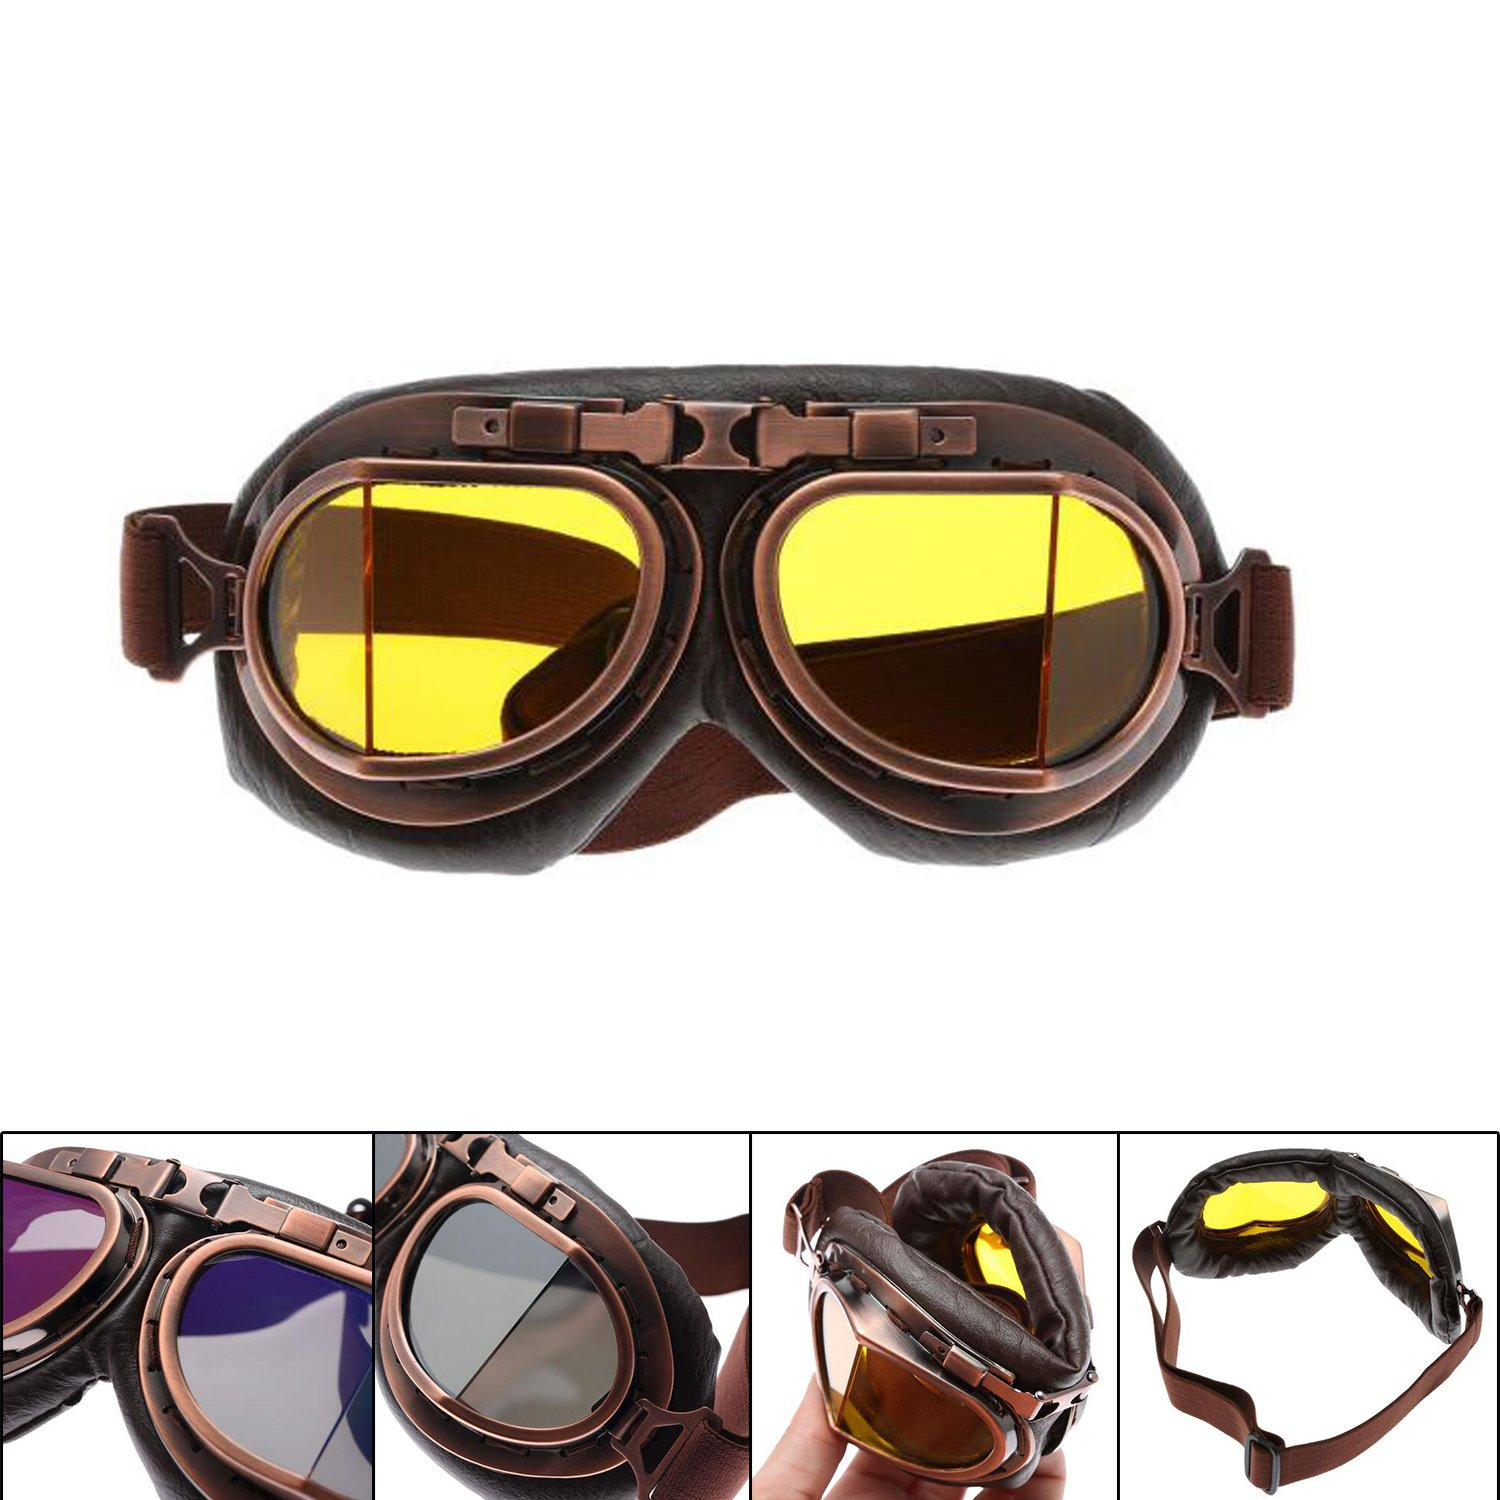 62f96dd54 MENGCORE Motorcycle Goggles Glasses Vintage Motocross Classic Goggles Retro  Aviator Pilot Cruiser Steampunk ATV Bike UV Protection Copper (Yellow Lens)